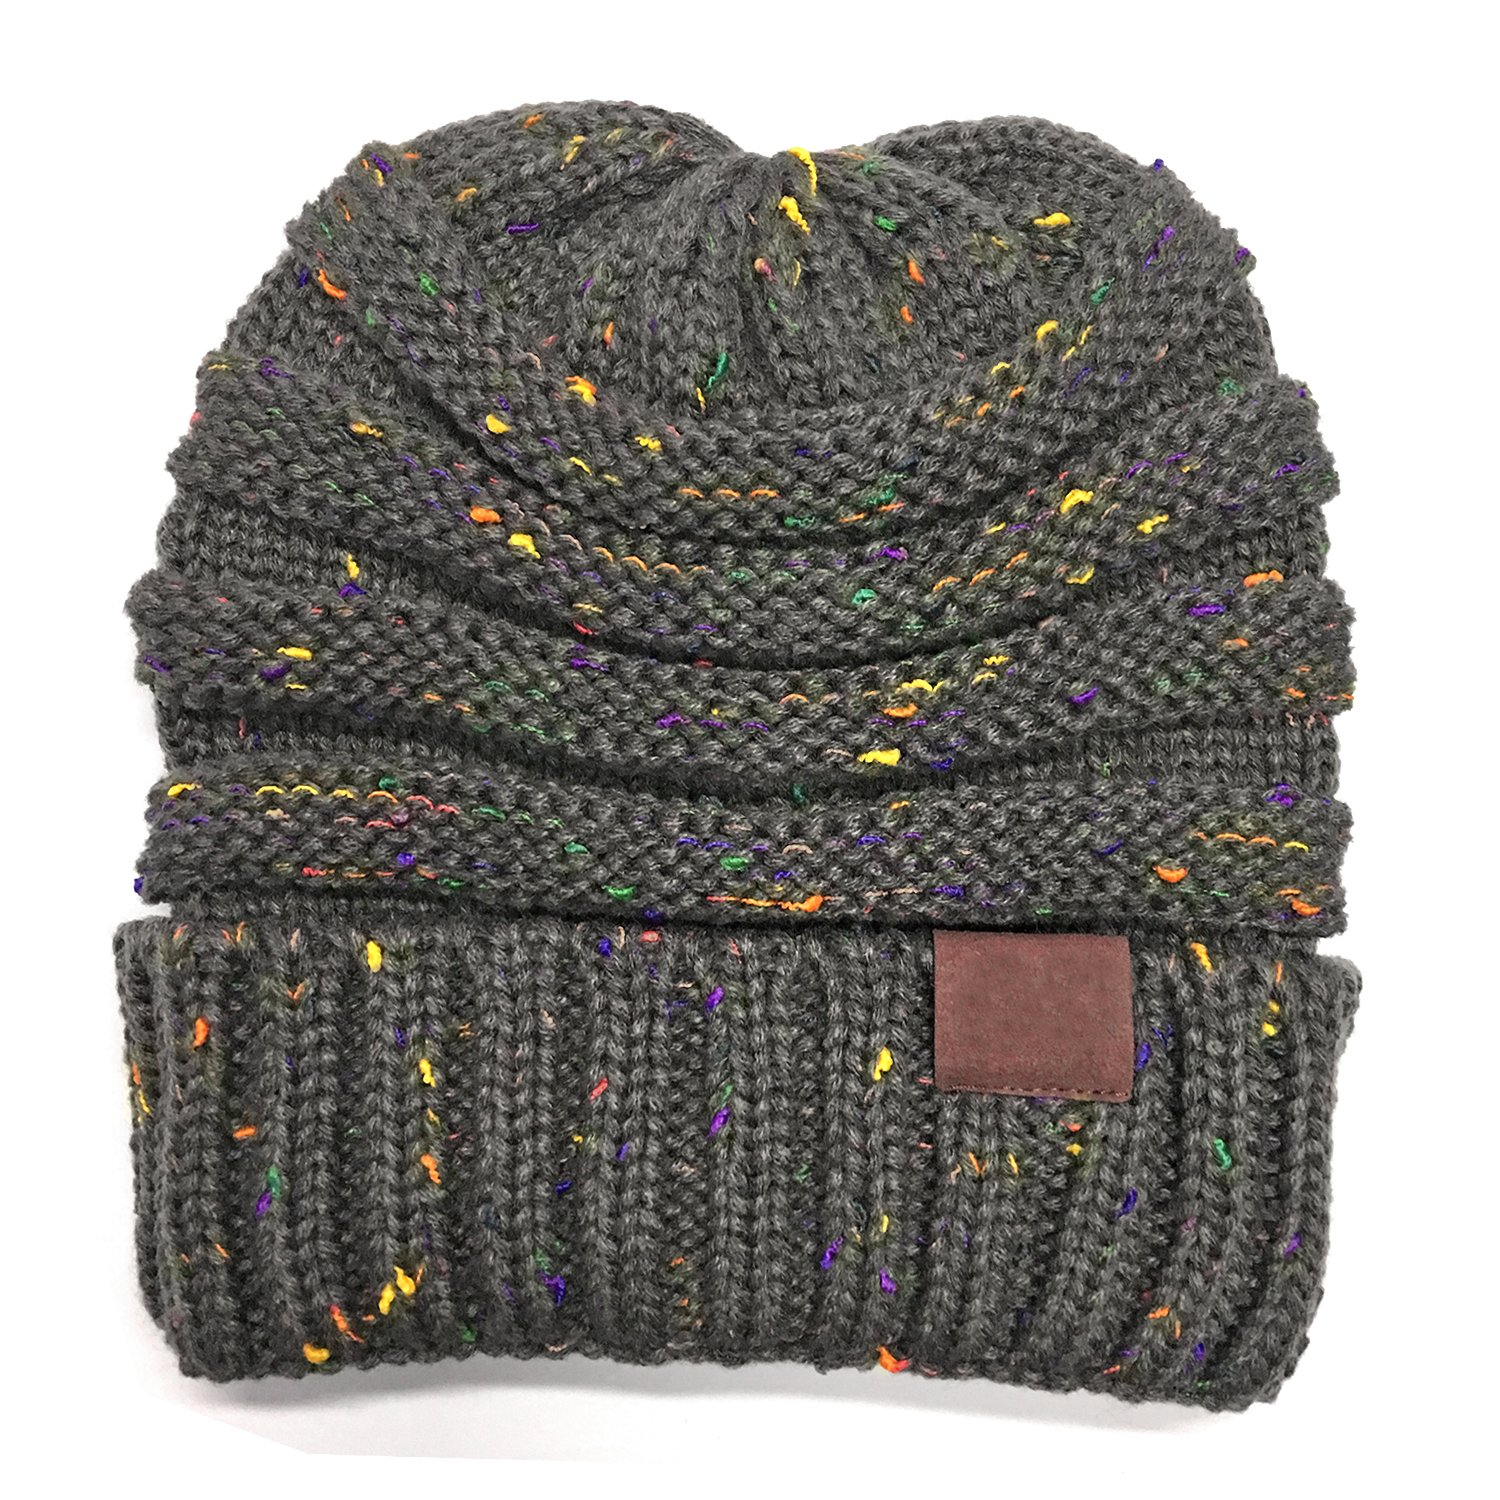 Trendy Warm Chunky Soft Stretch Cable Knit Beanie Skull Slouchy Beanie Hats Outdoor Skiing Warm Hats,One Size,Mix Color Grey by FALE (Image #2)